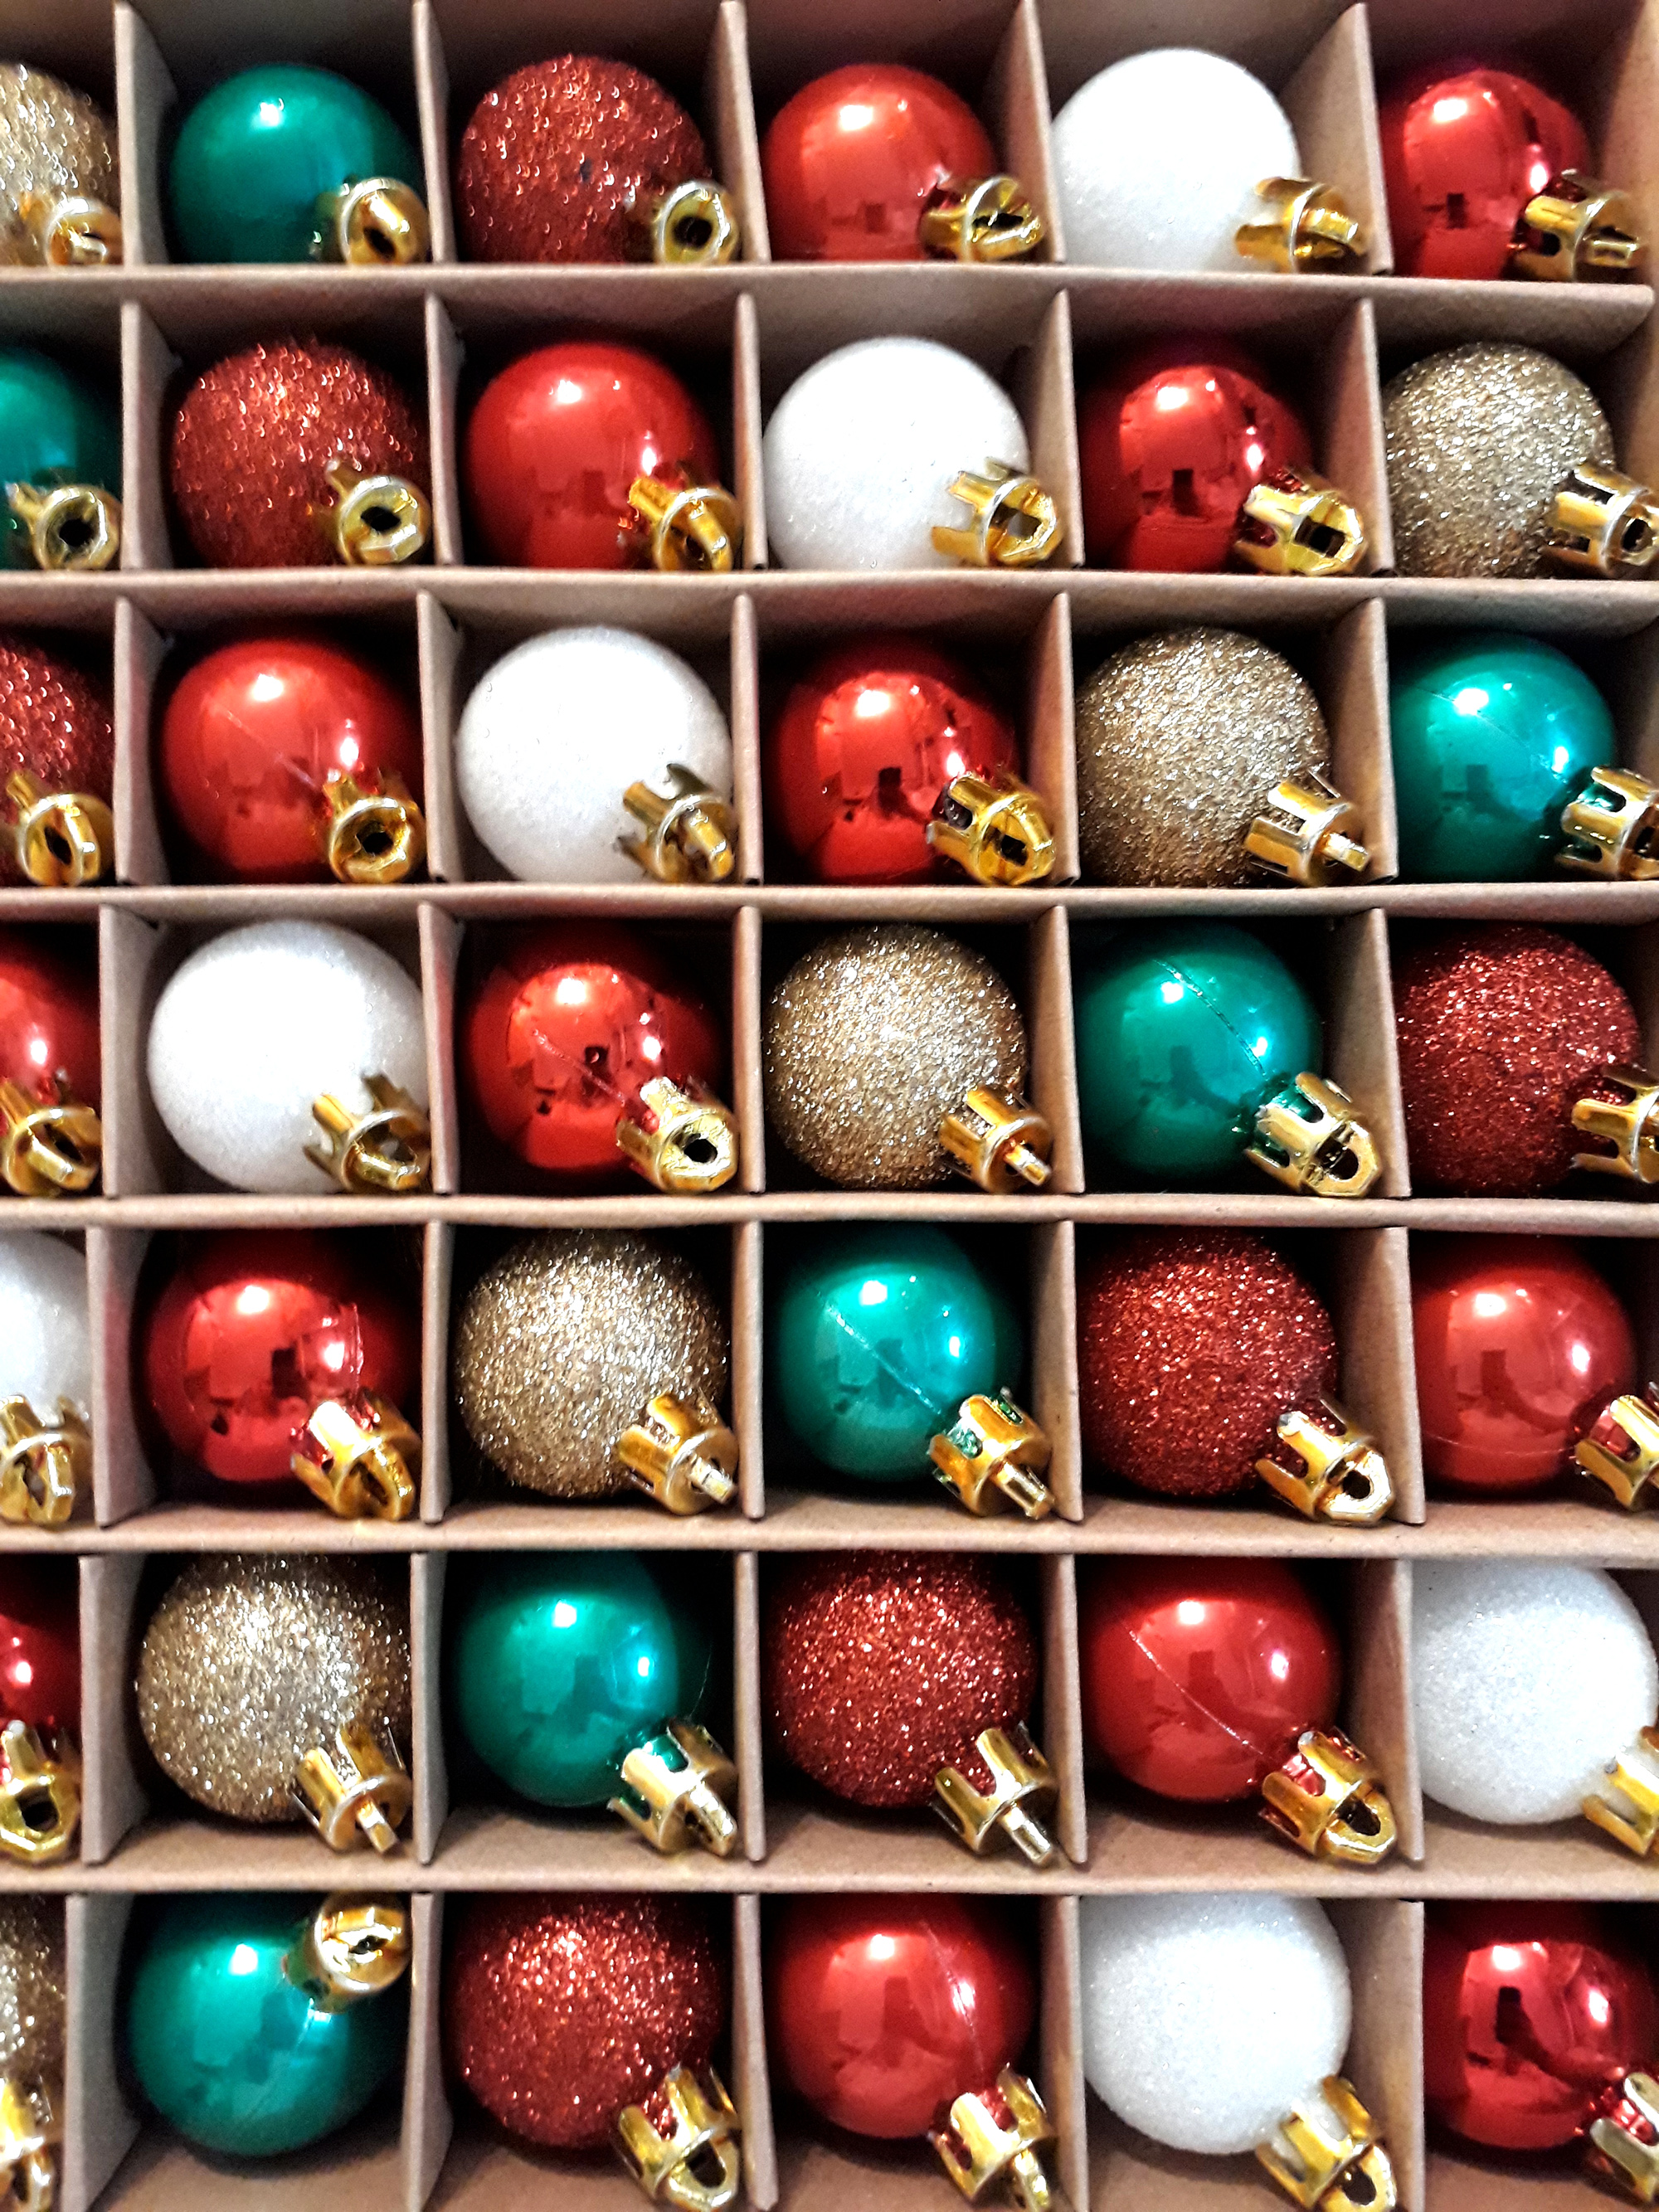 5 Smart Tips to Organize and Store Holiday Décor